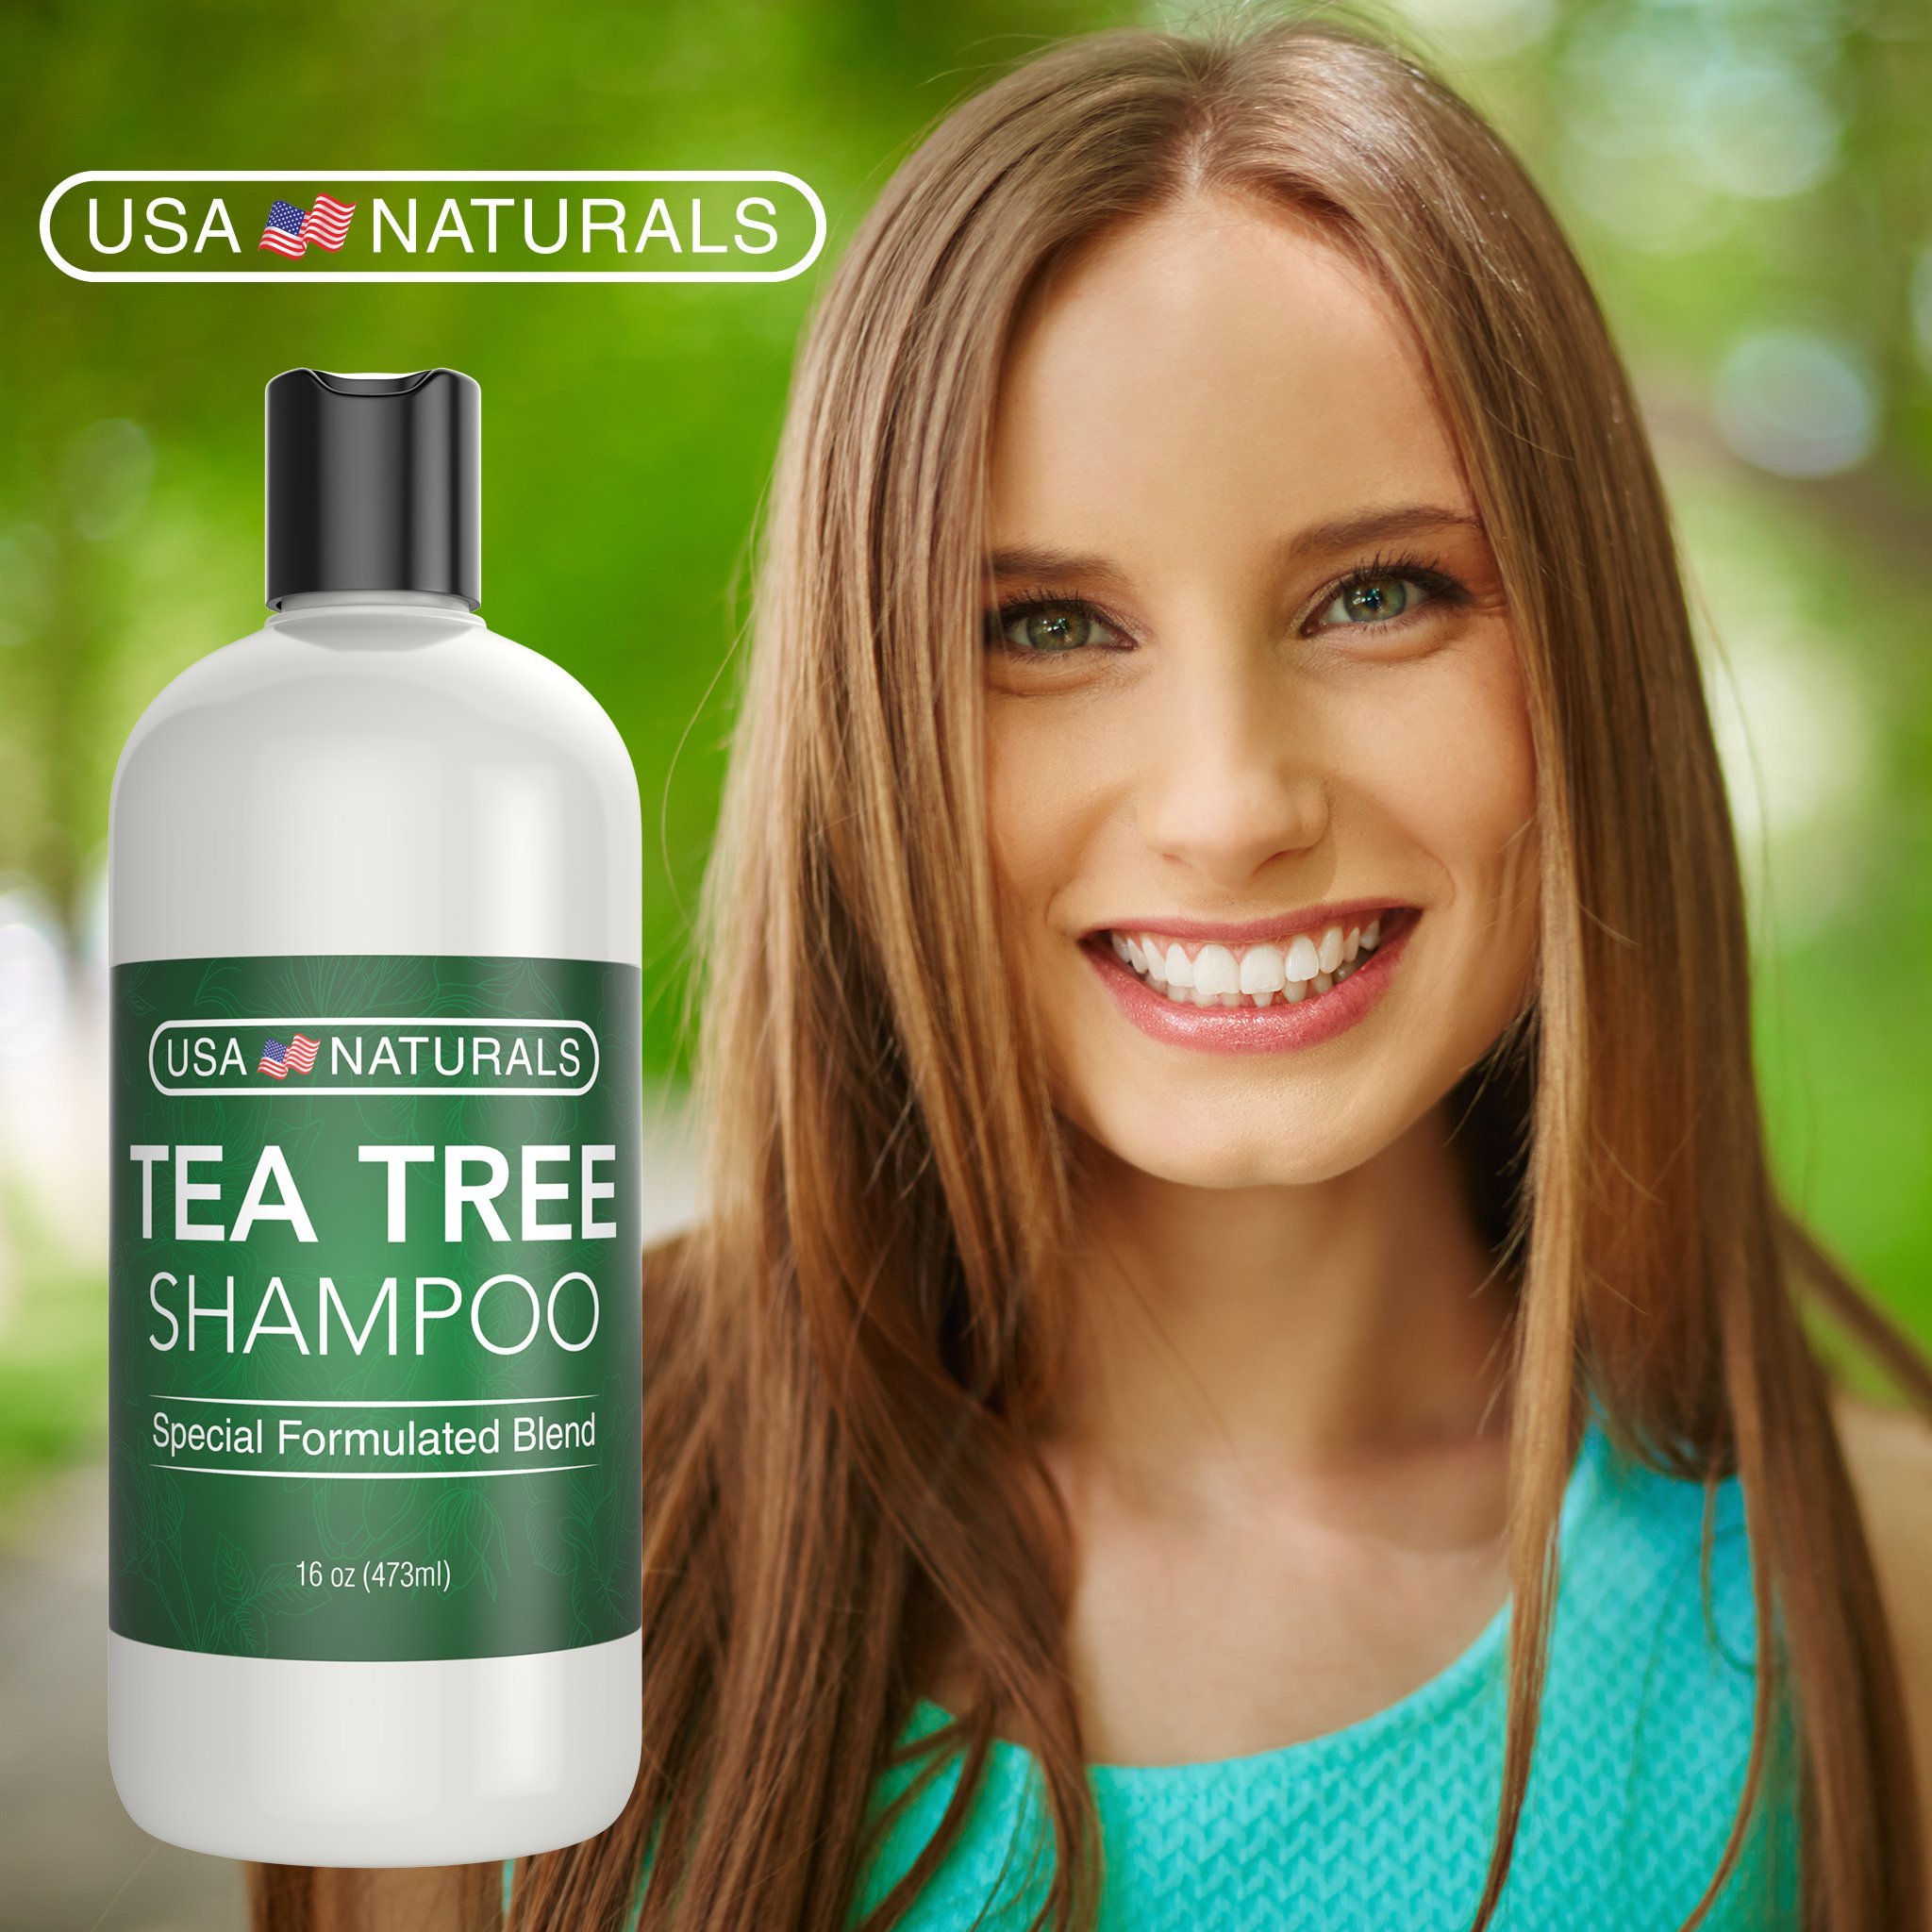 Tea Tree Oil Shampoo Sulfate-Free: Revitalize Hair, Combat Hair Loss and Cleanse Scalp with Naturally-Sourced Ingredients - Pure Tea Tree Oil, Organic Argan Oil, Organic Green Tea (Tea Tree Shampoo) by USA Naturals (Image #9)